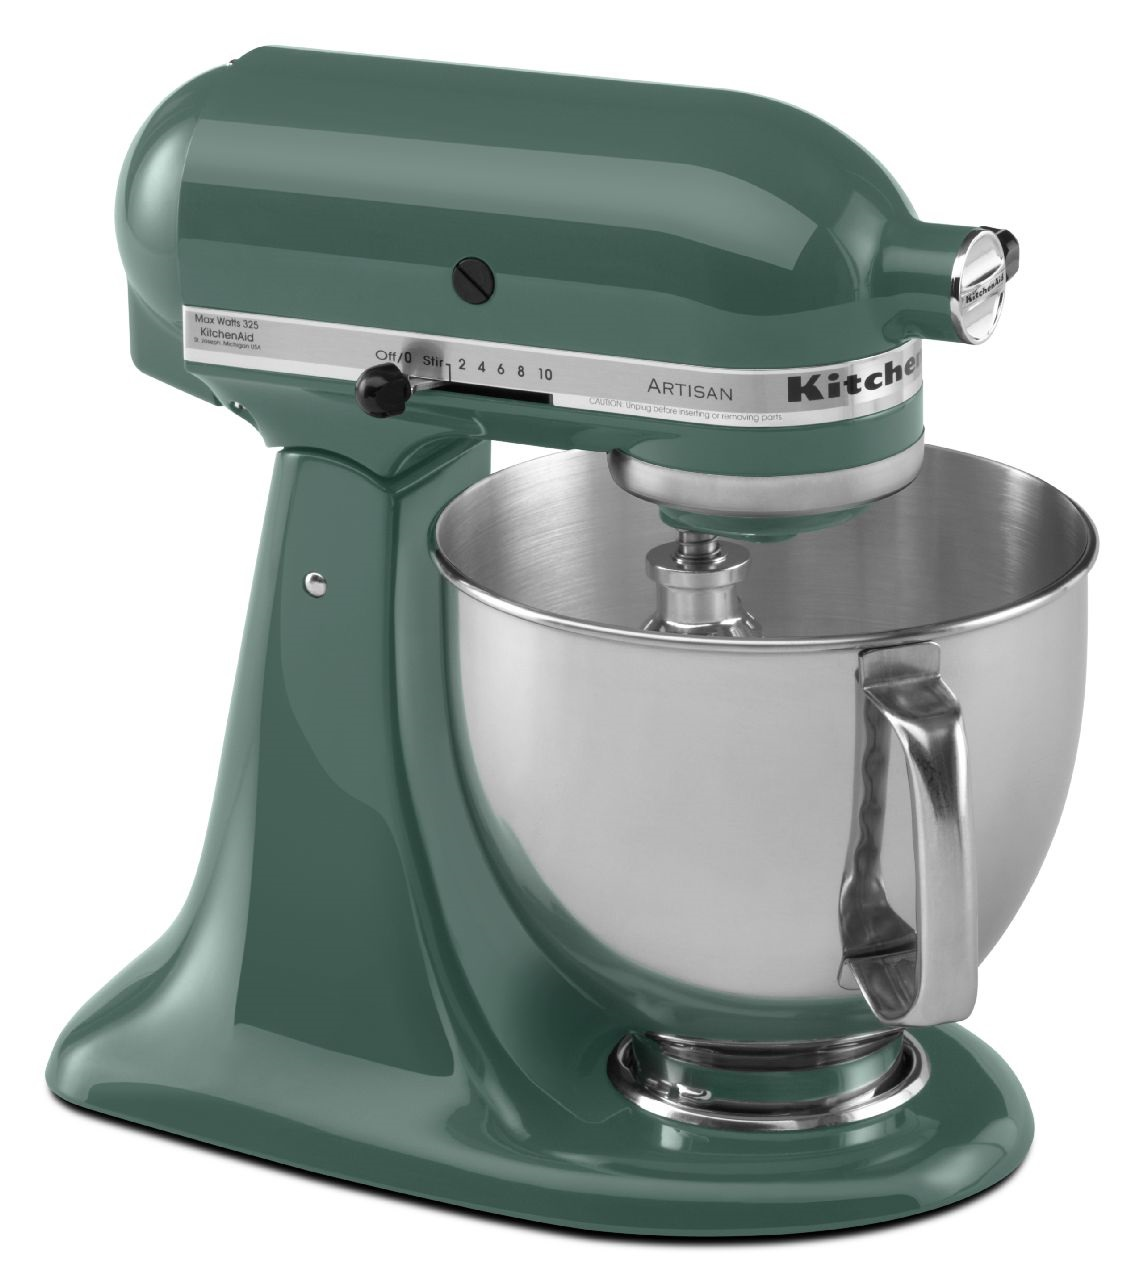 KitchenAid-Refurbished-Artisan-Series-5-Quart-Tilt-Head-Stand-Mixer-RRK150 thumbnail 11